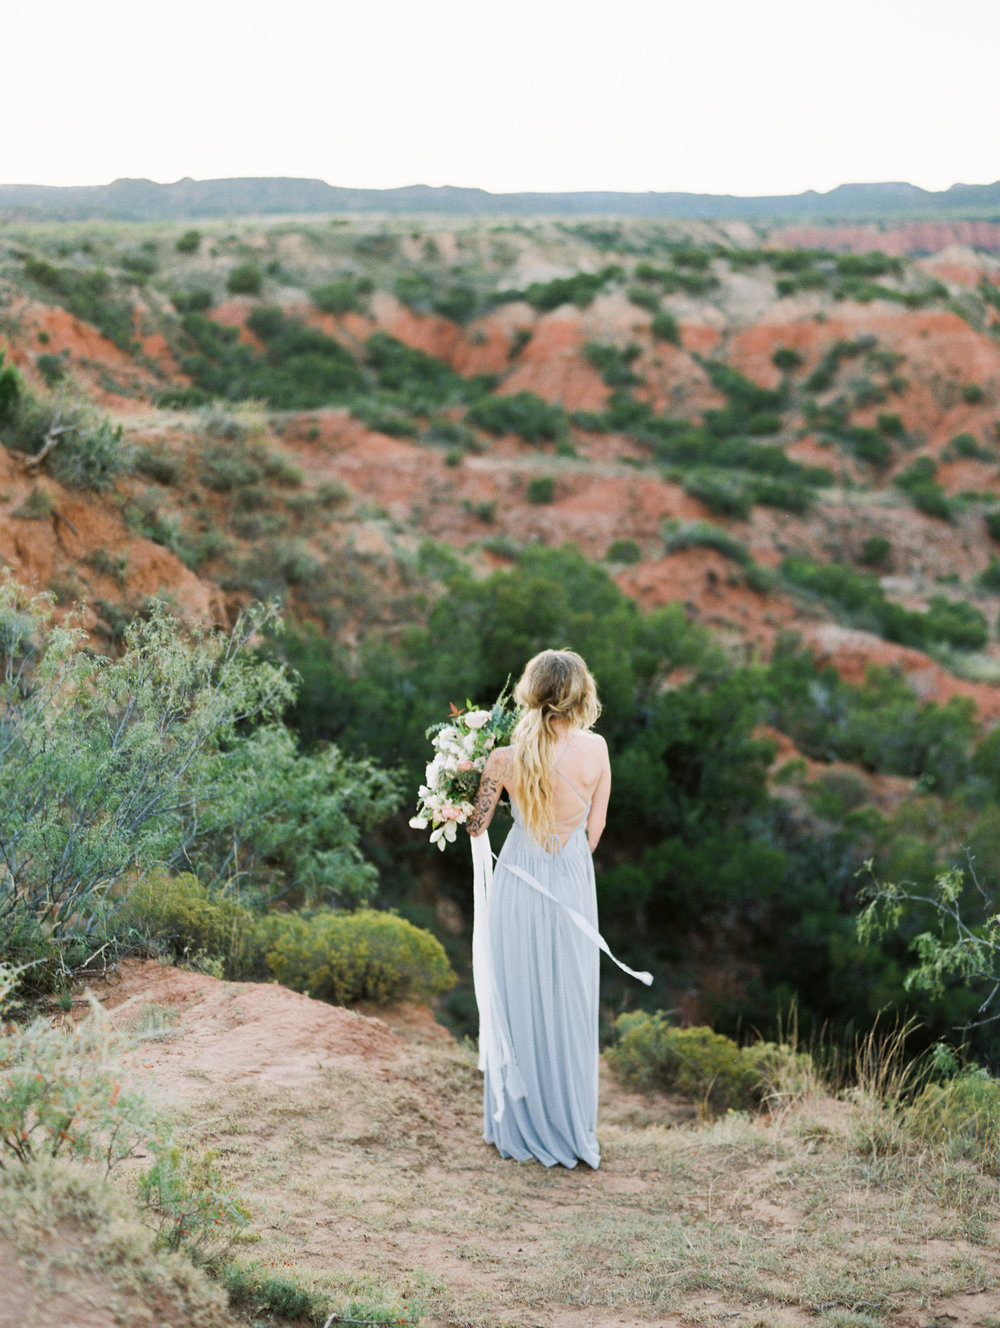 Katie-Rivera-Photography-Caprock-Canyon-Styled-Shoot-Candelaria-Designs-017.jpg